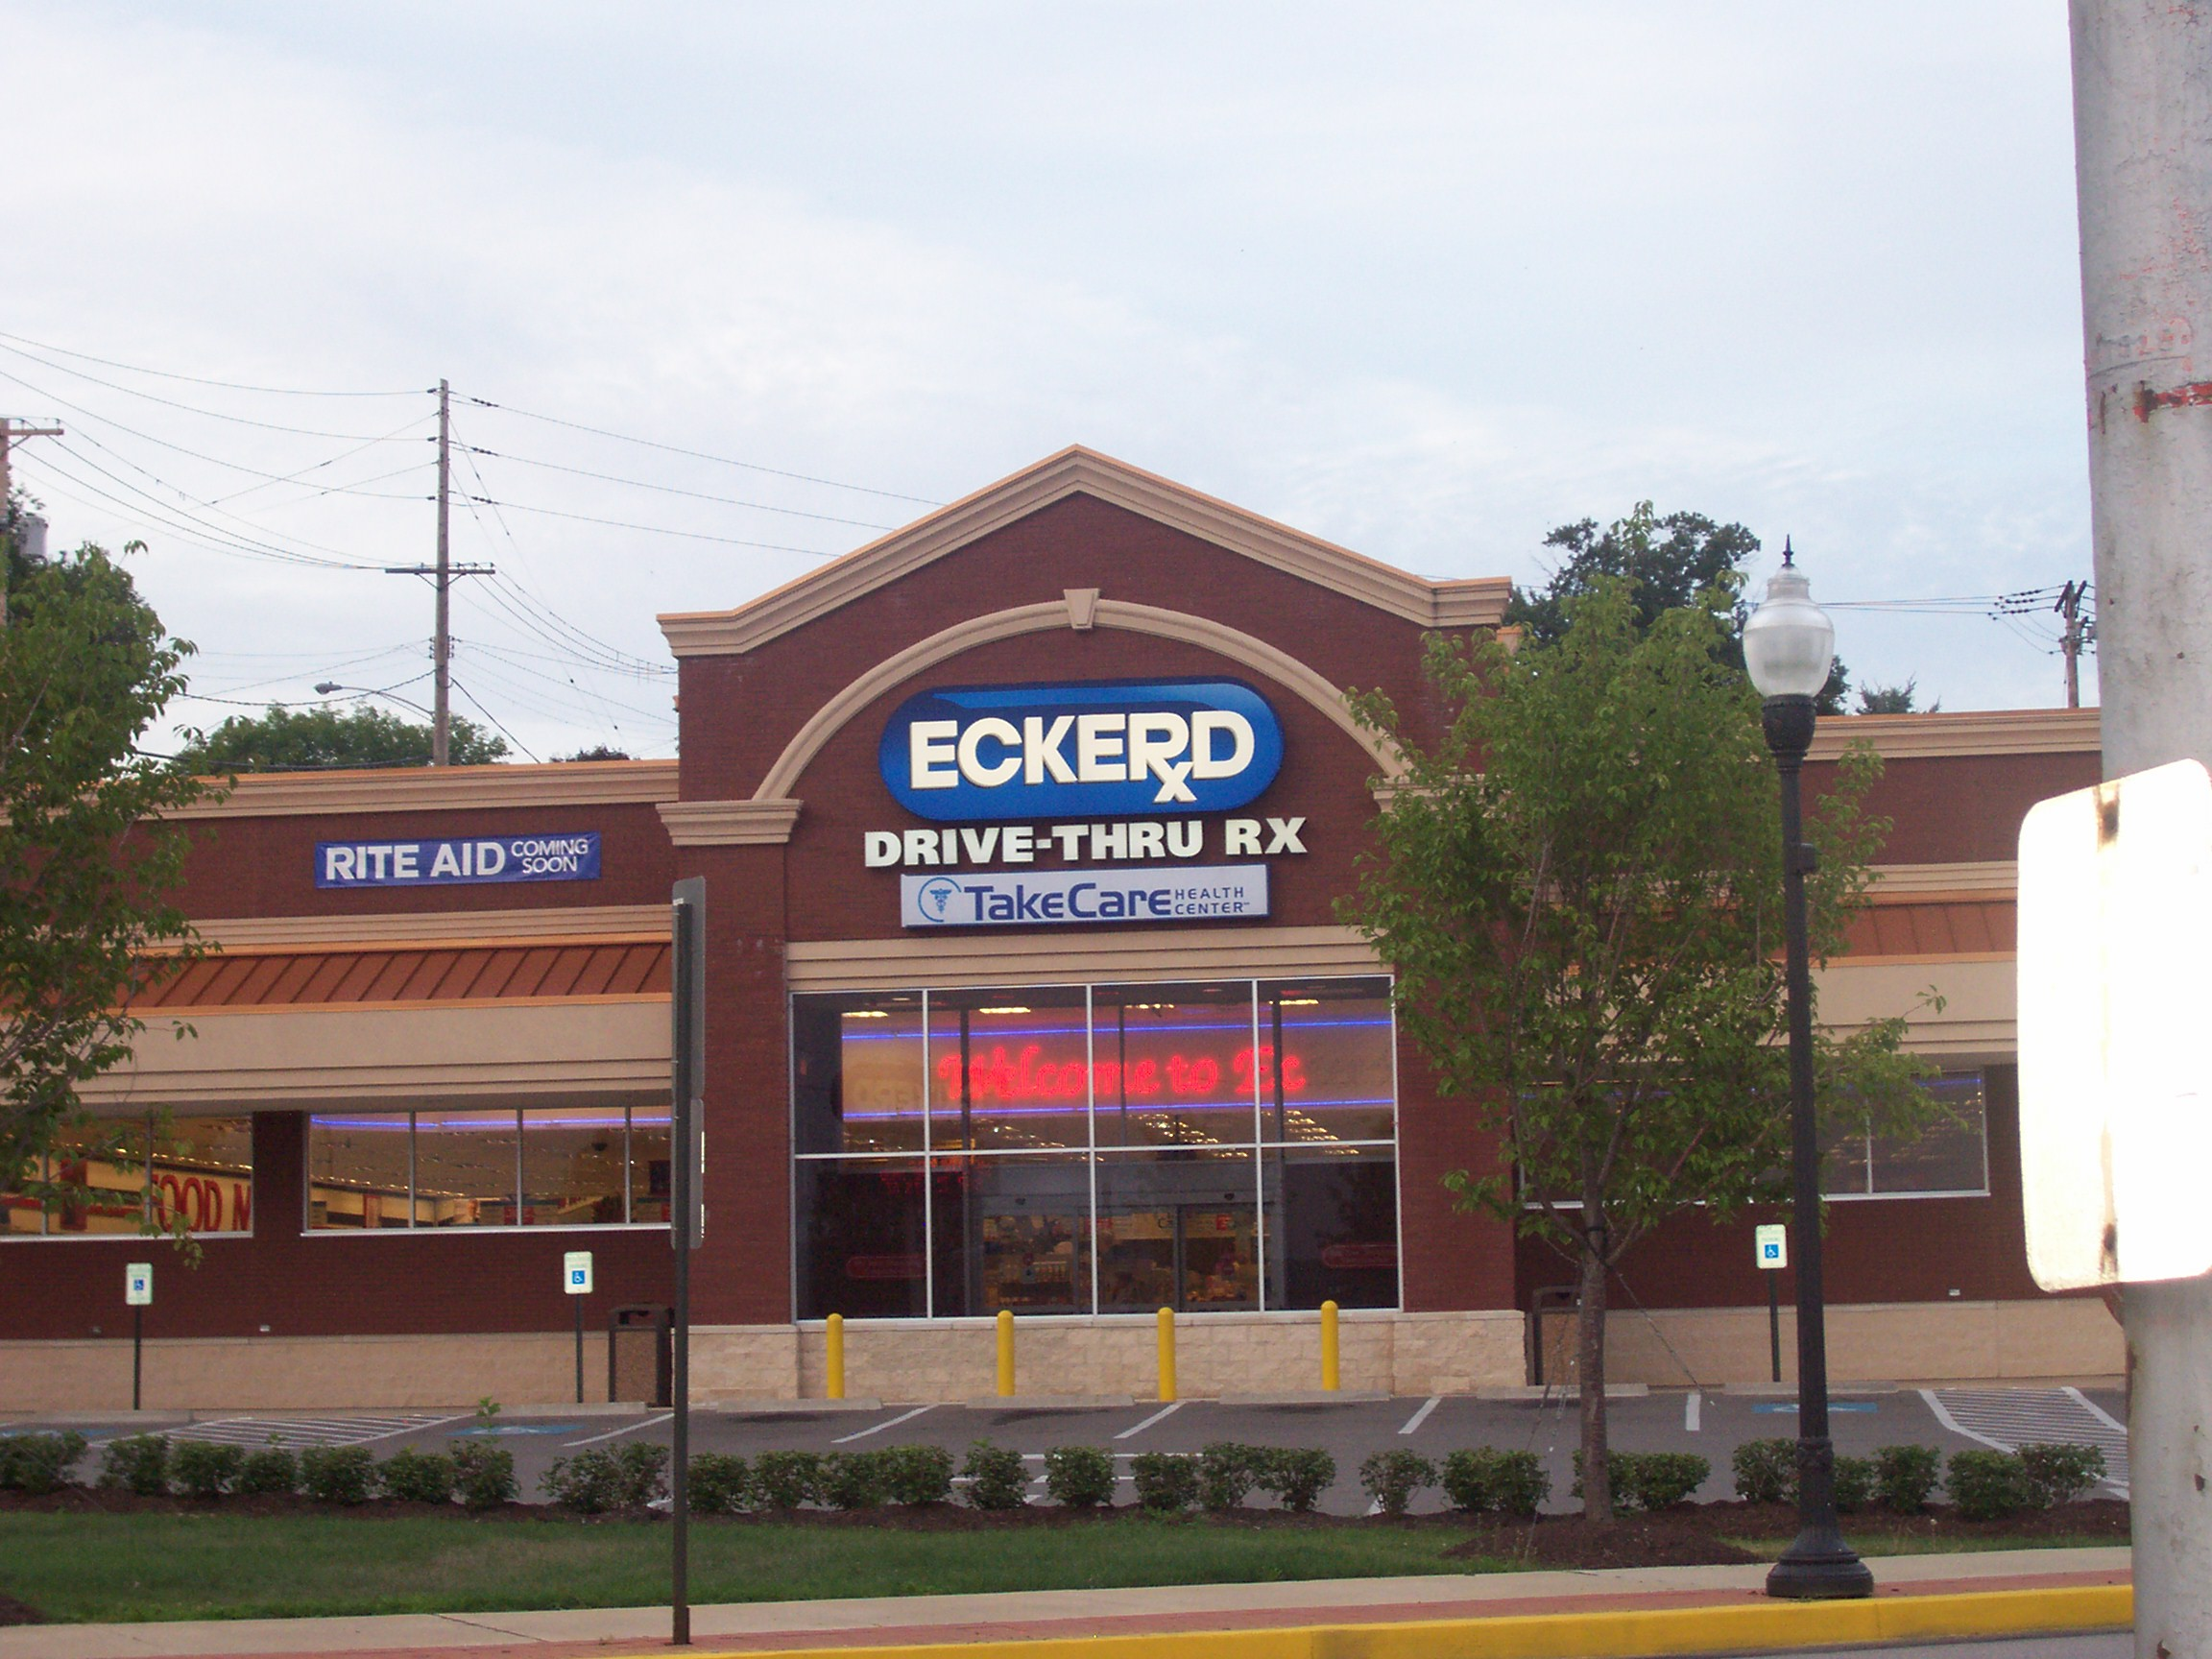 architecture branding eckerd pioneering spirit leaves built eckerd prior to rite aid